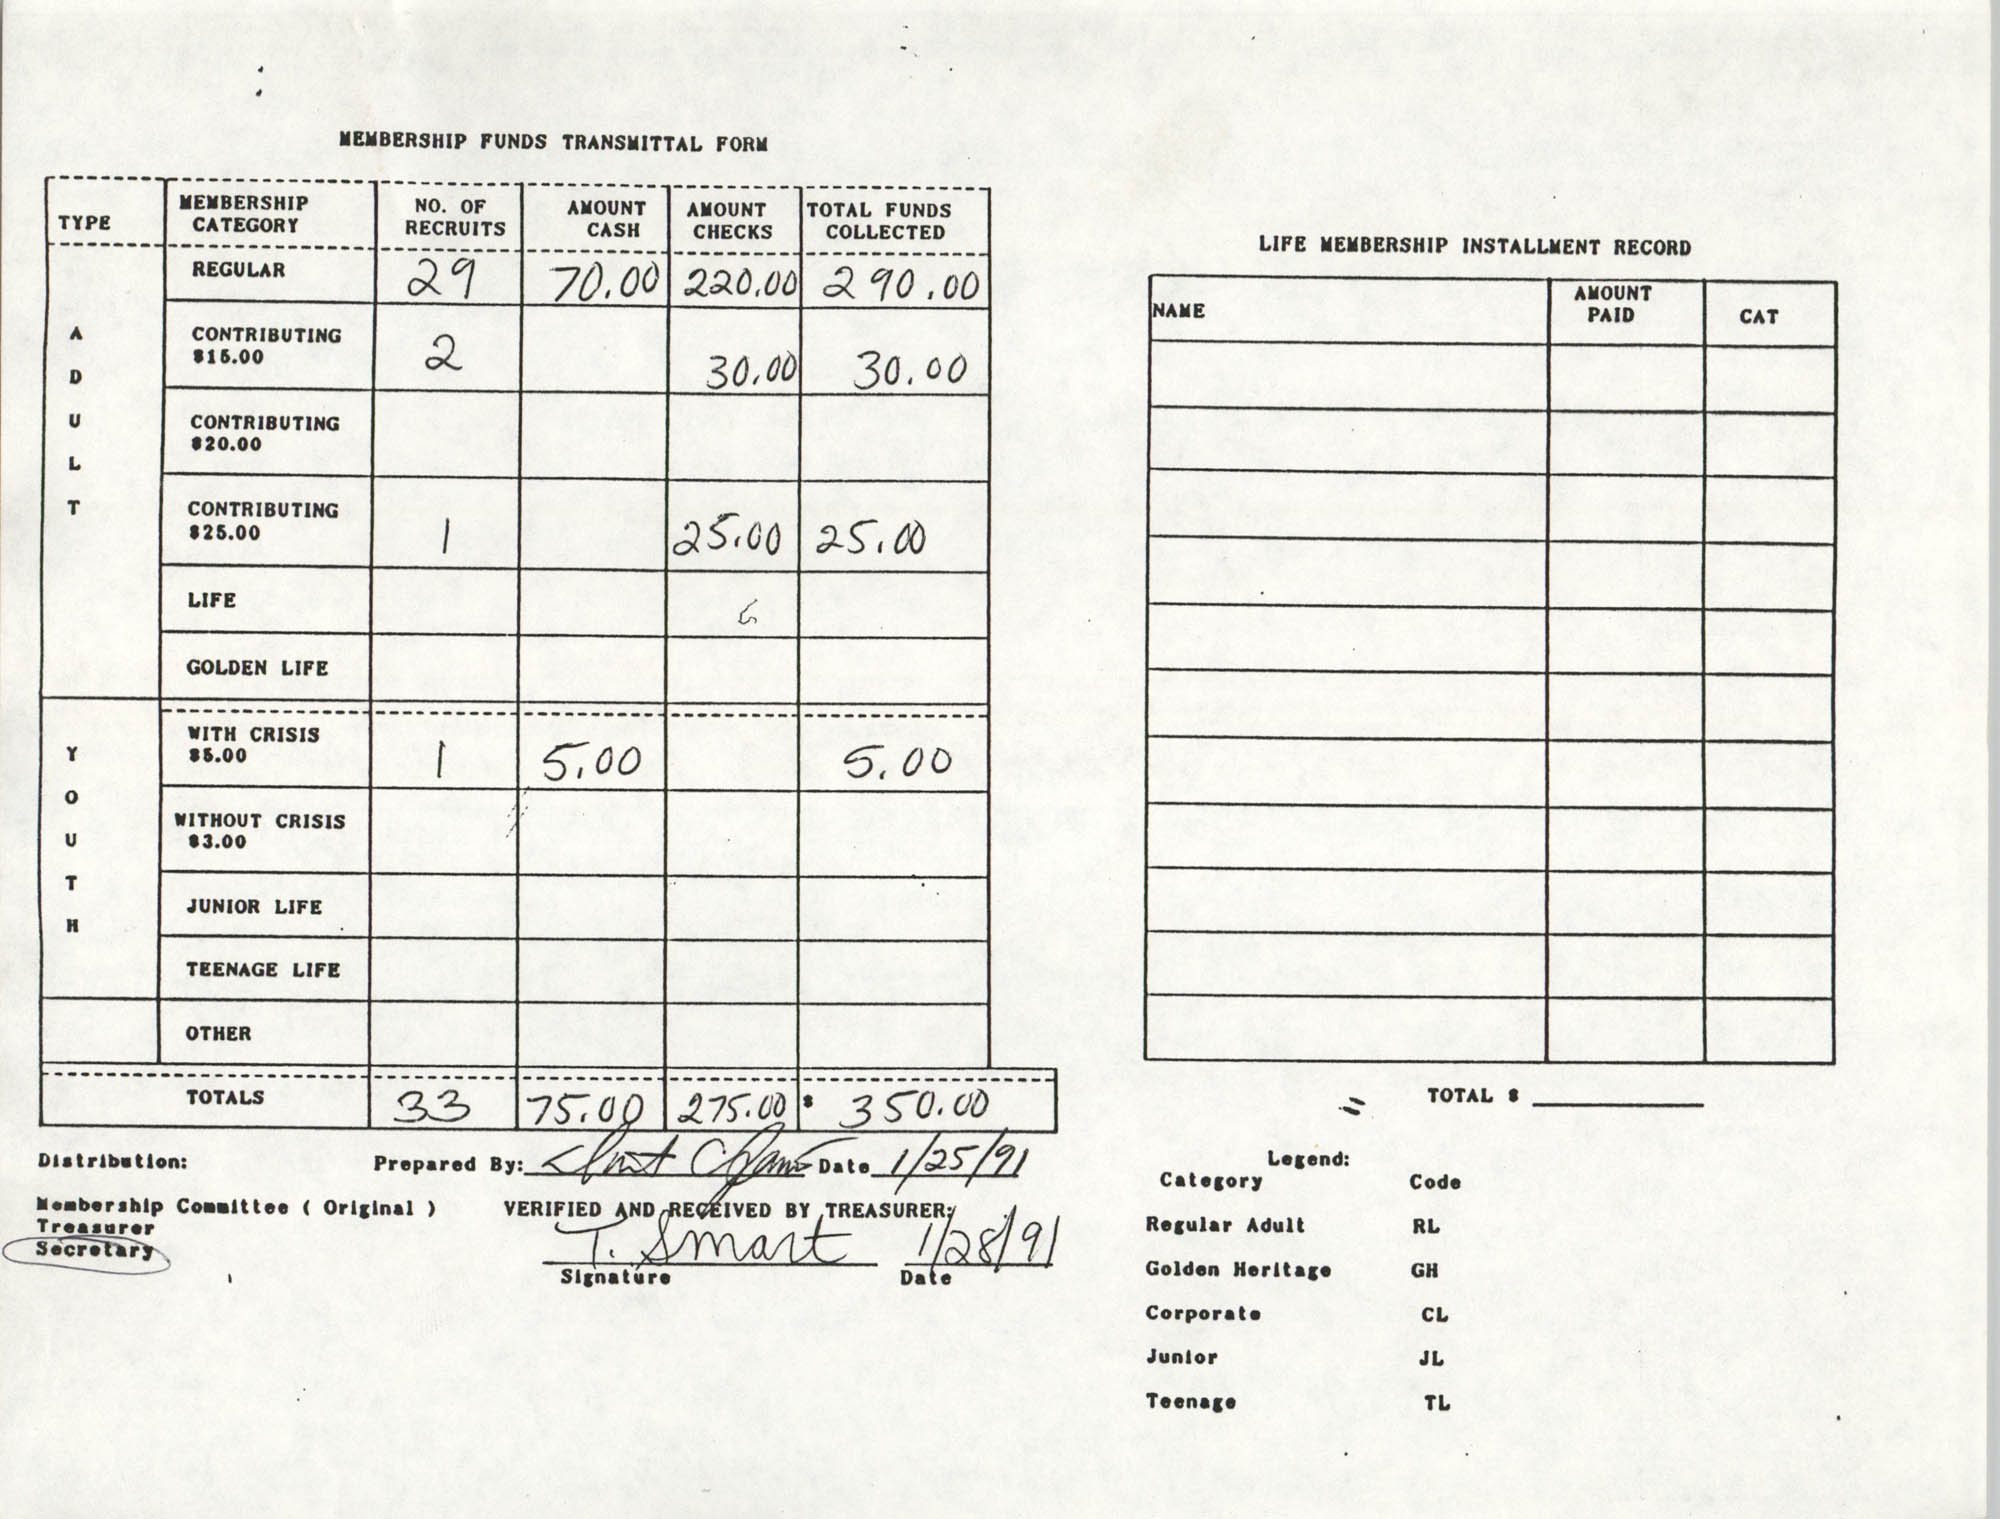 Charleston Branch of the NAACP Funds Transmittal Forms, January 1991, Page 3